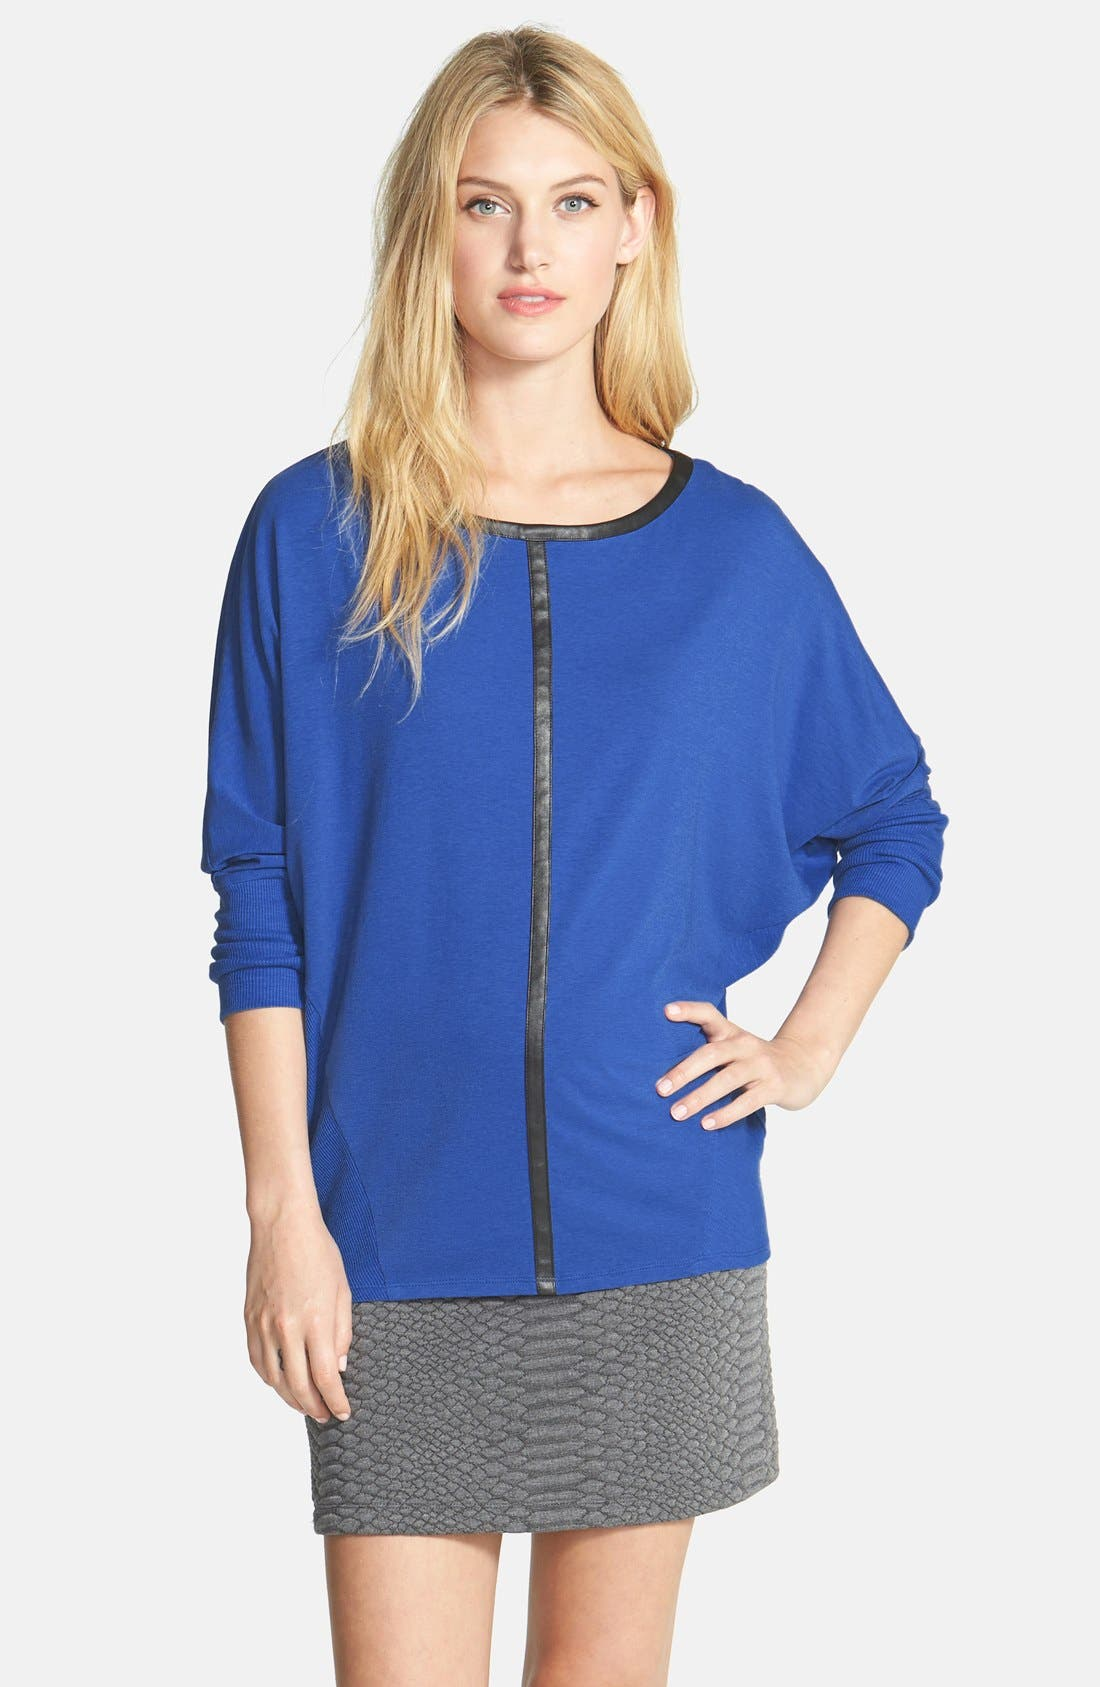 Main Image - Two by Vince Camuto 'Saturday' Faux Leather Trim Top